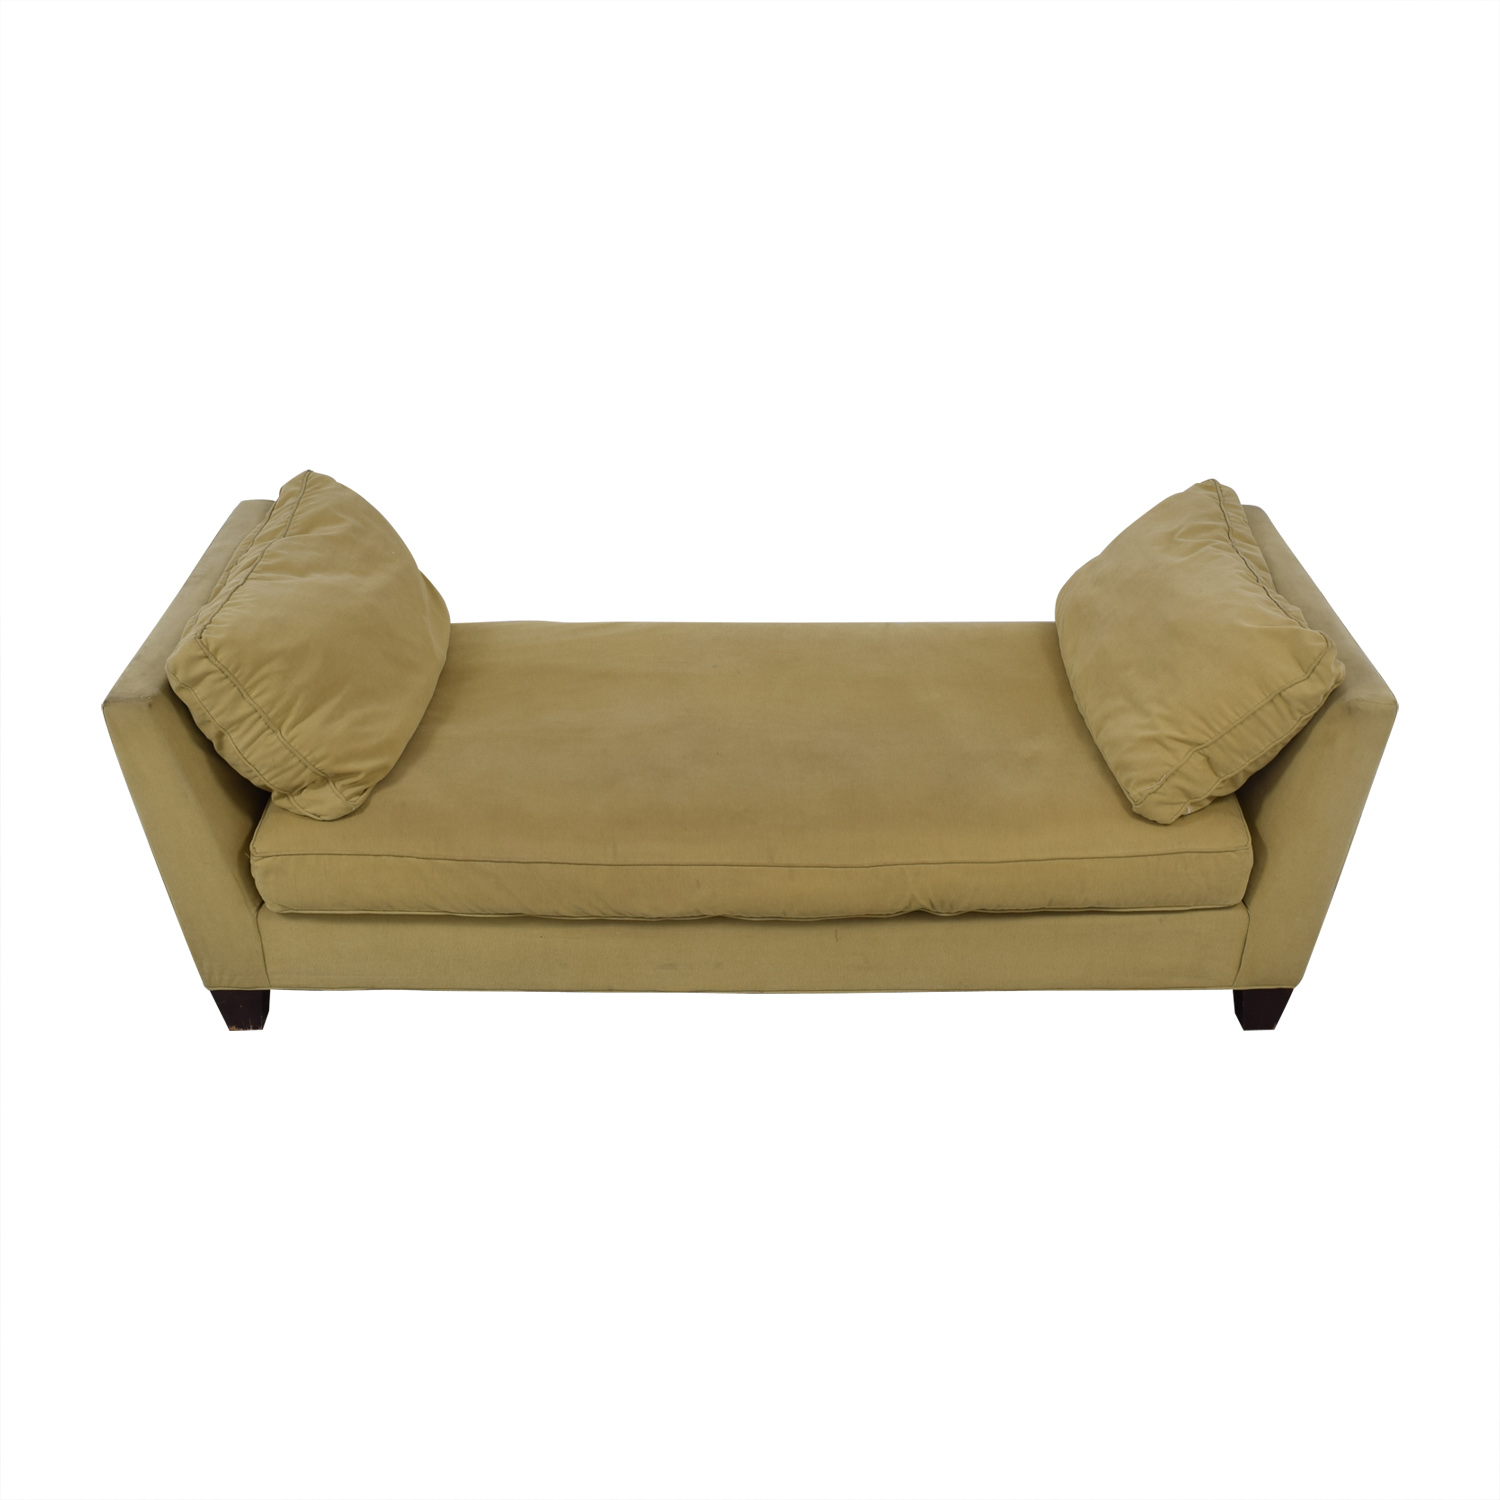 Crate & Barrel Crate & Barrel Marlowe Daybed dimensions